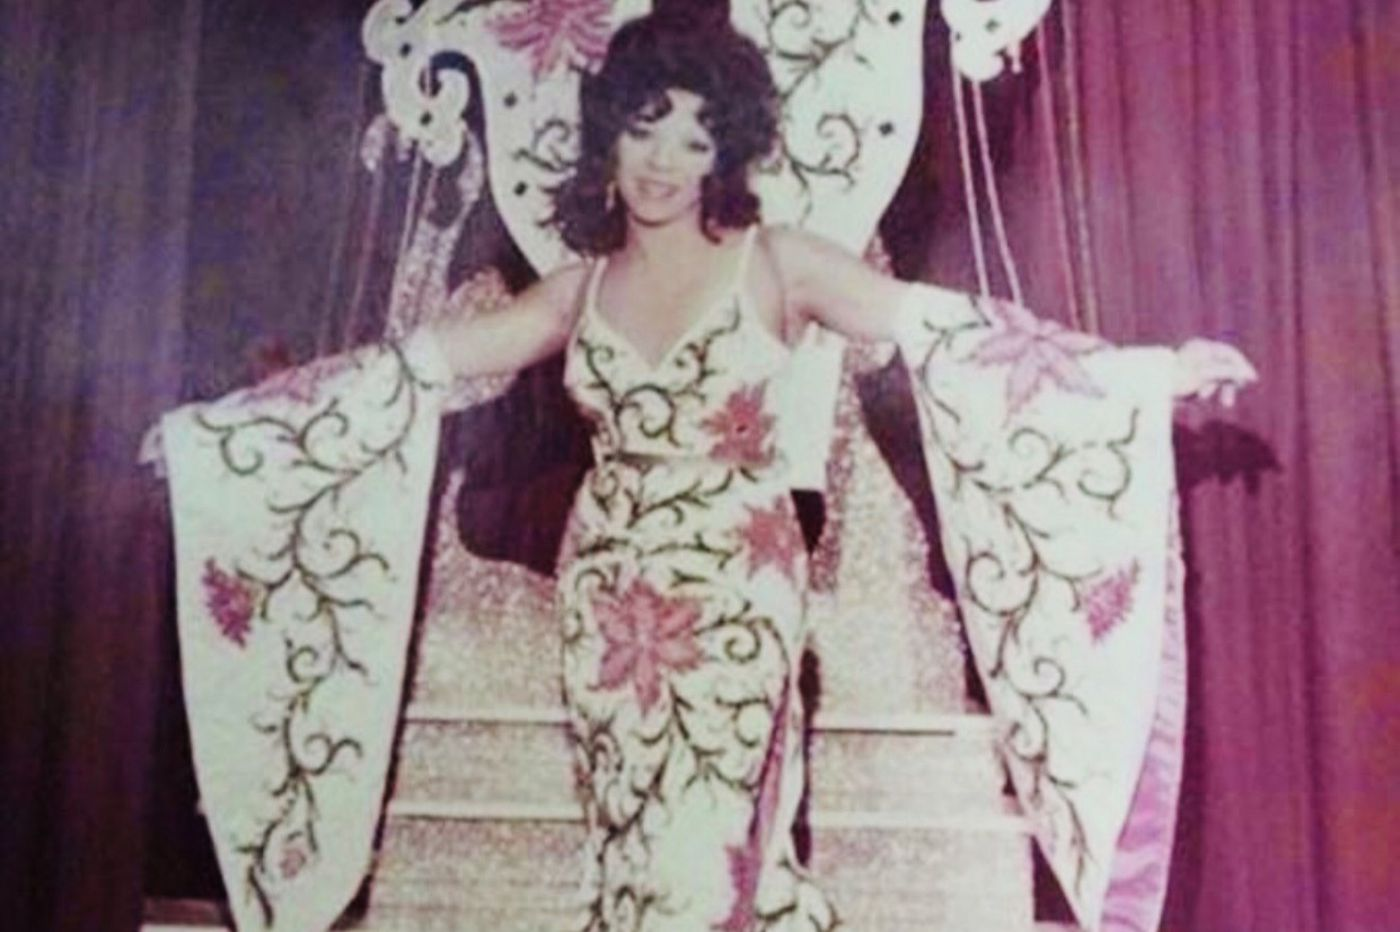 Les Harrison, a drag performer who entertained audiences for five decades, dies at 77